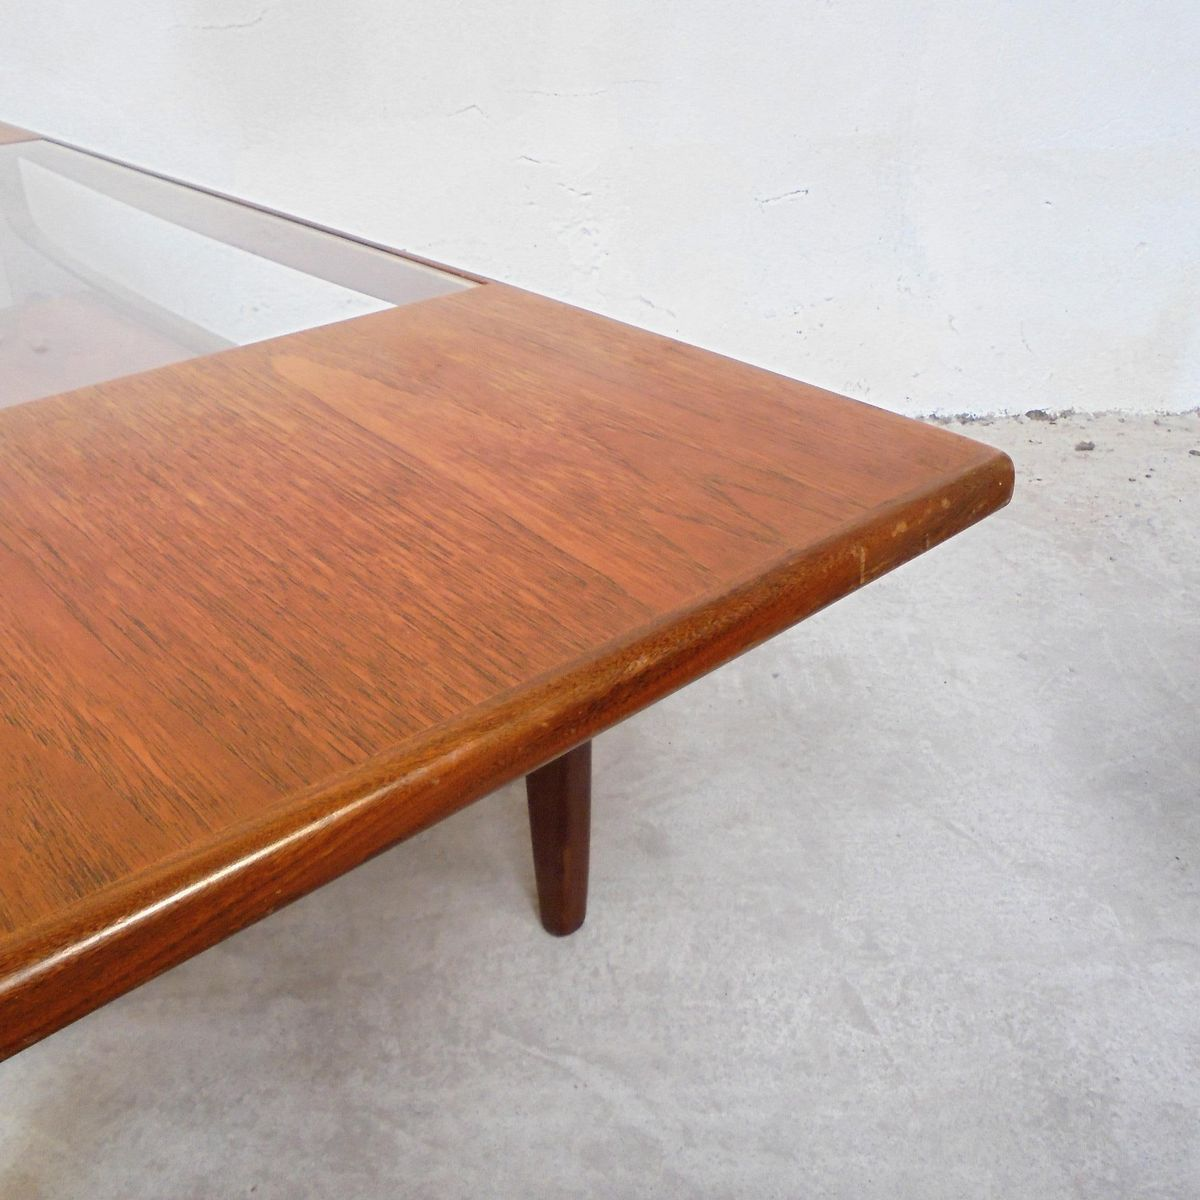 Mid century rectangular coffee table from g plan for sale at pamono coffee table from g plan 8 price 120200 regular price 128800 geotapseo Images